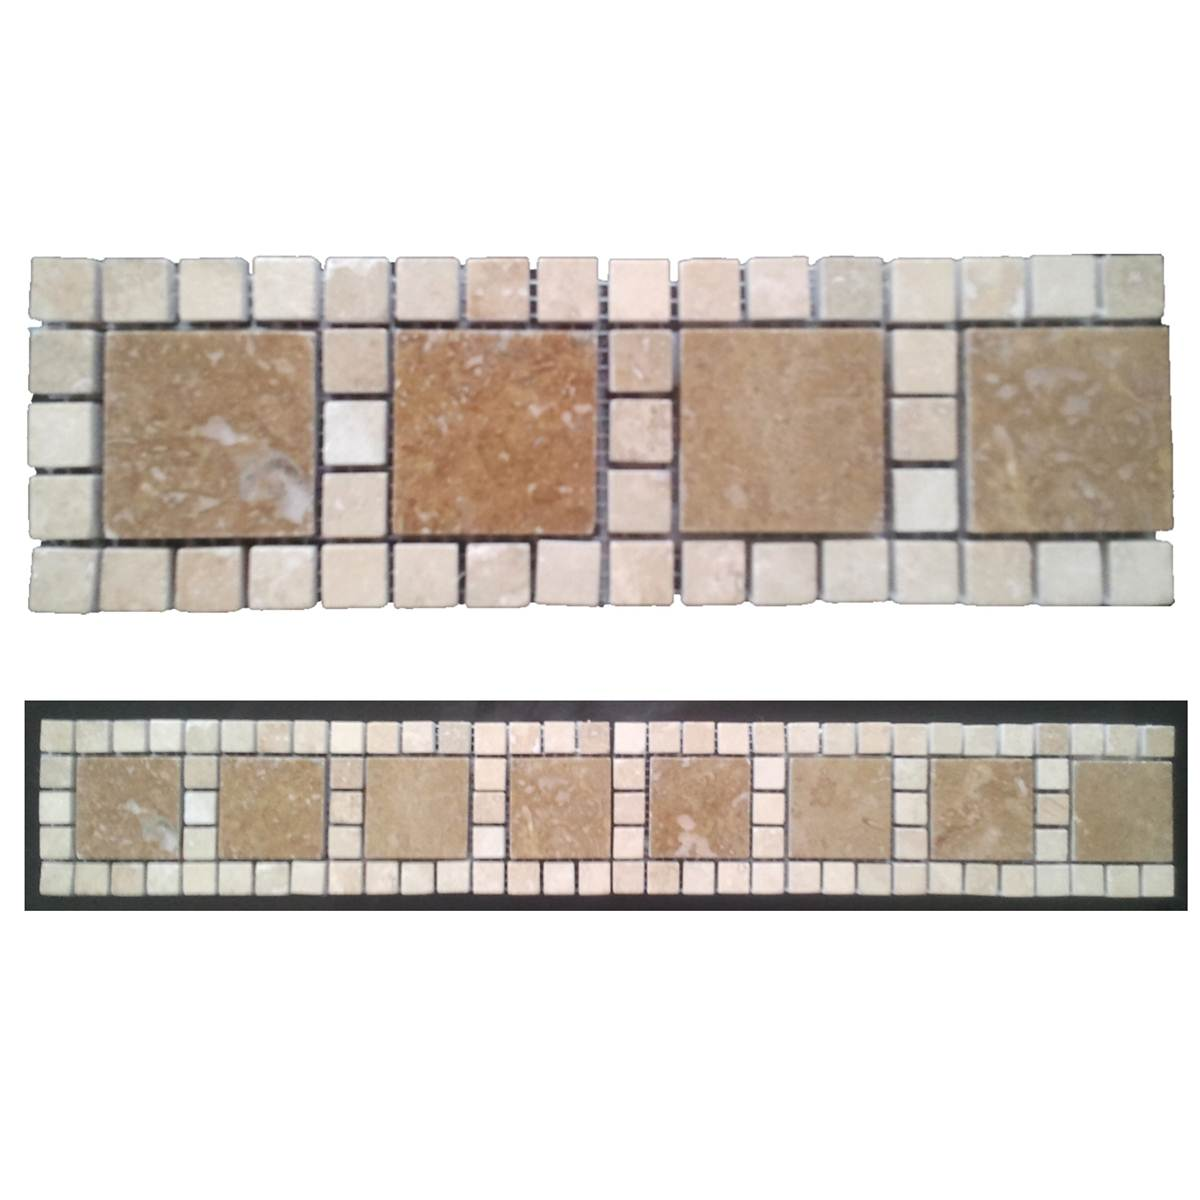 Natural stone havran bordure dims: 8,6x28 cm